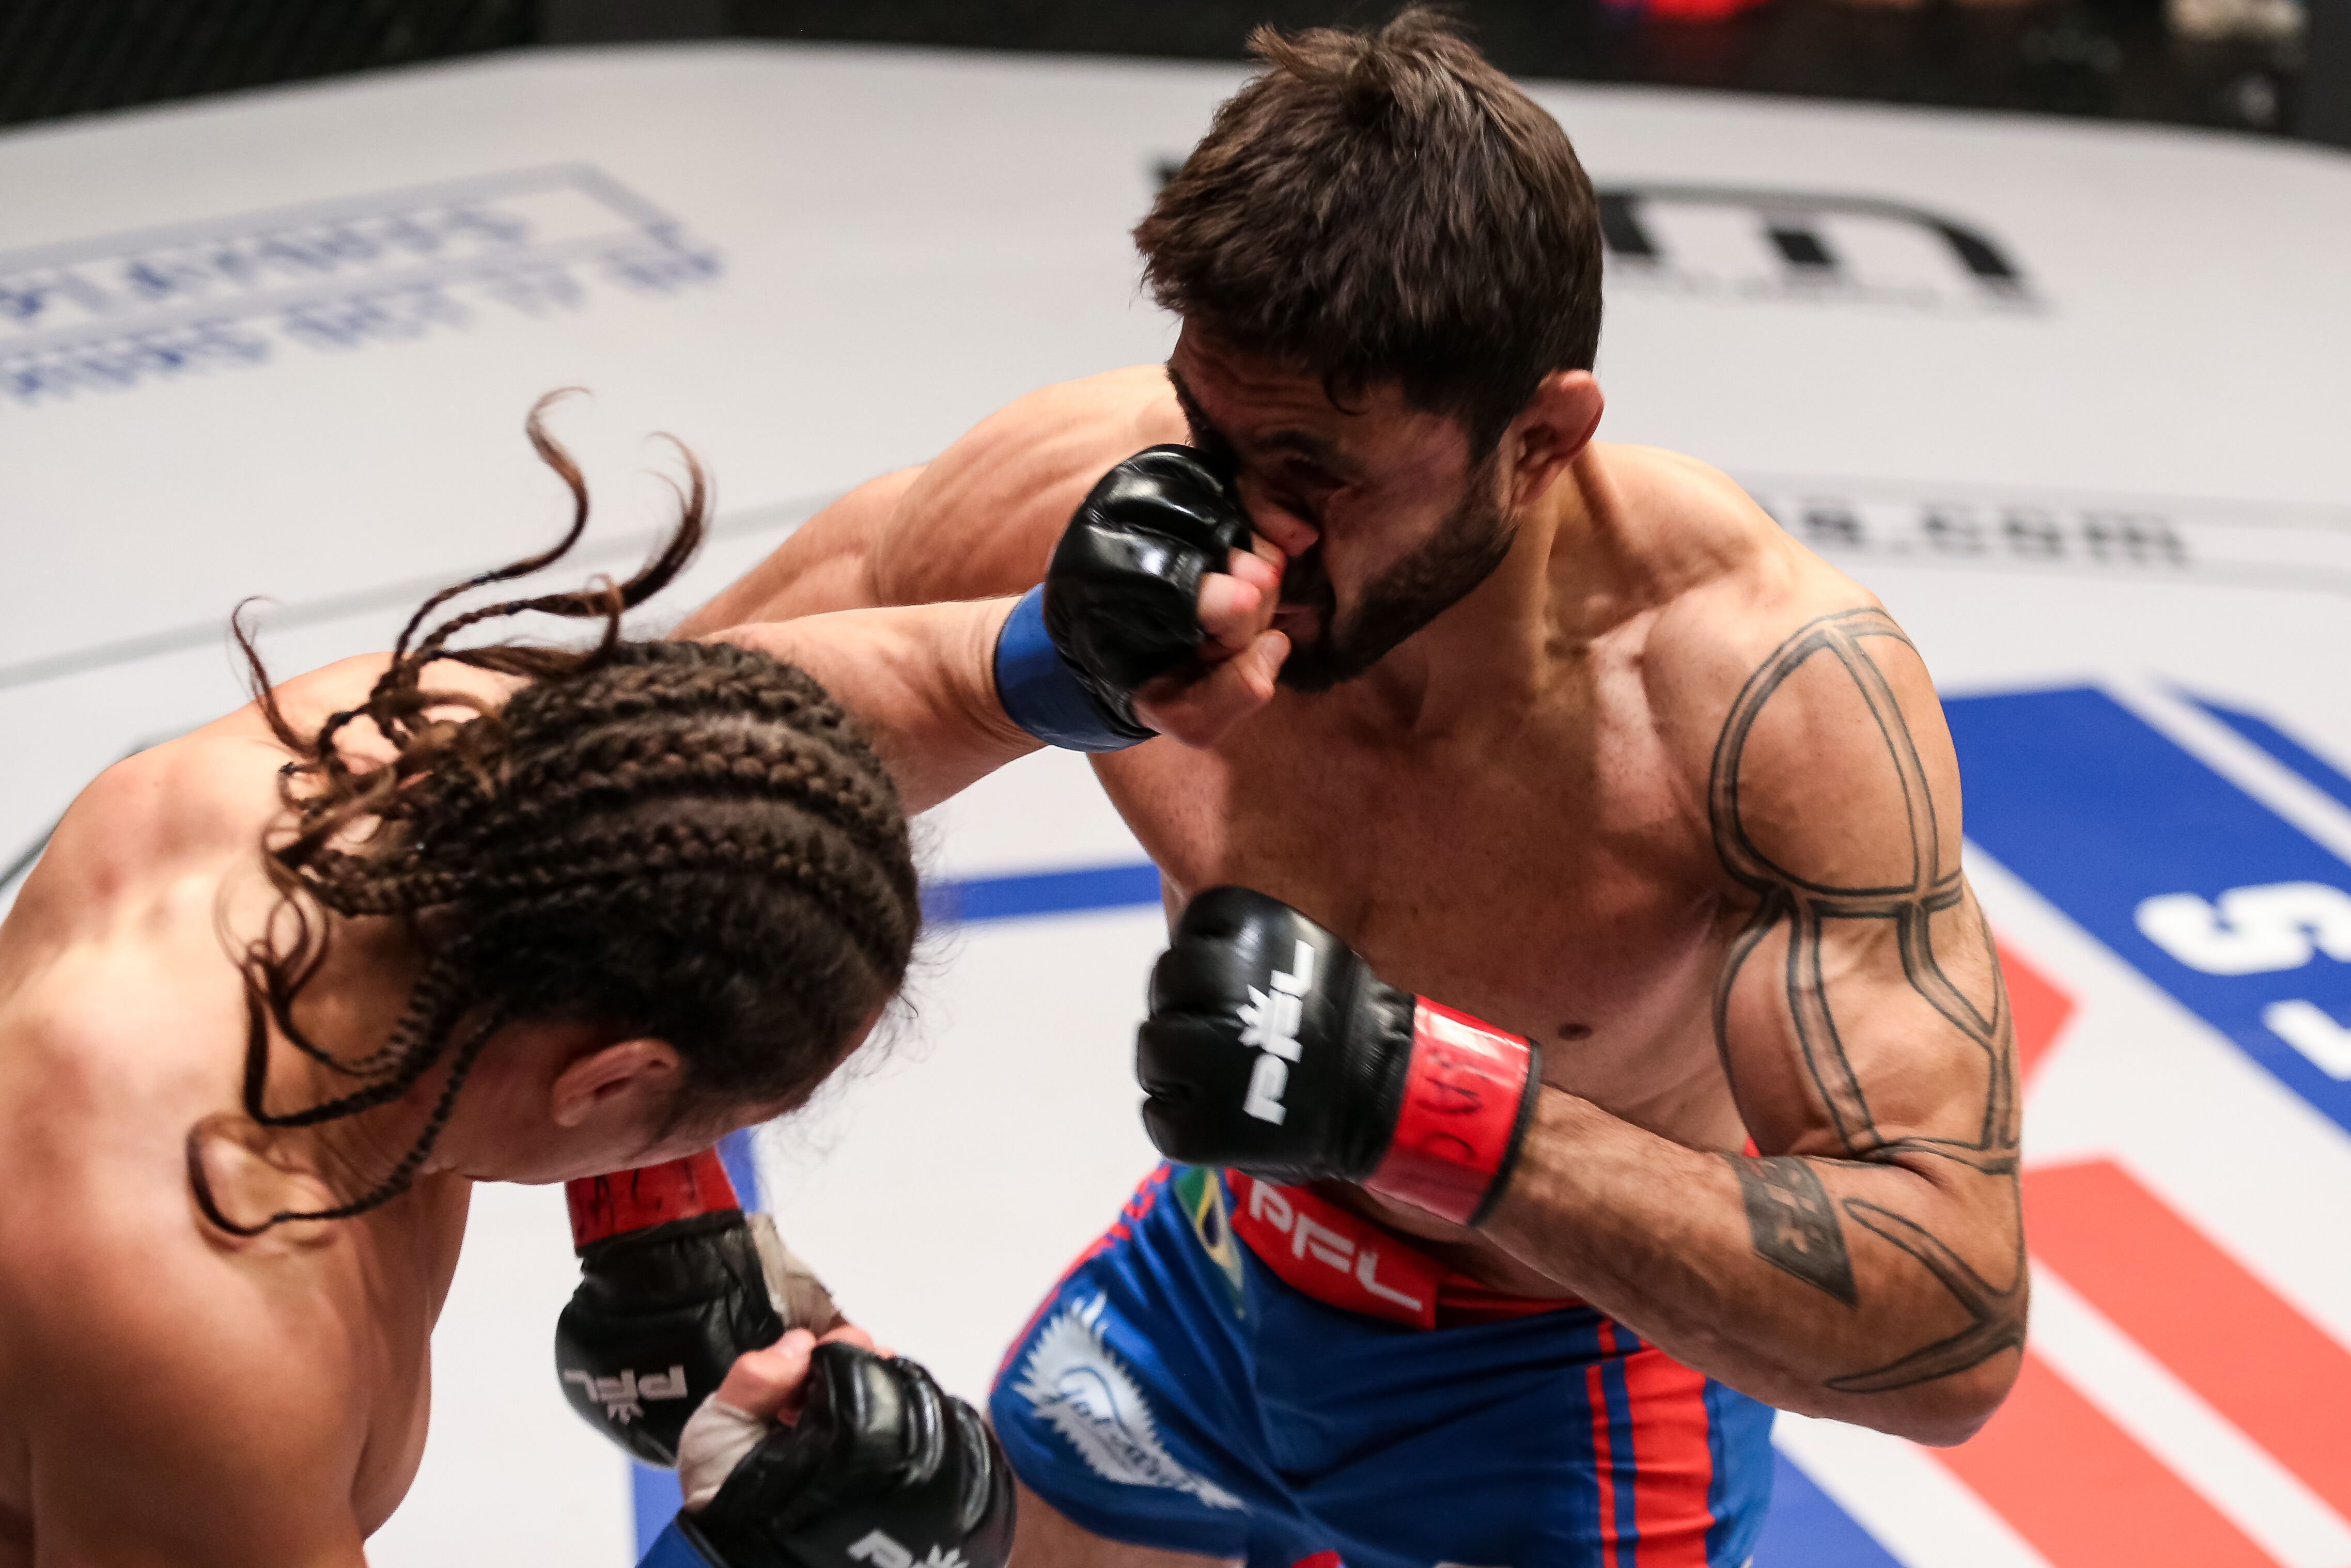 PFL 7: Welterweight and women's lightweight results and highlights